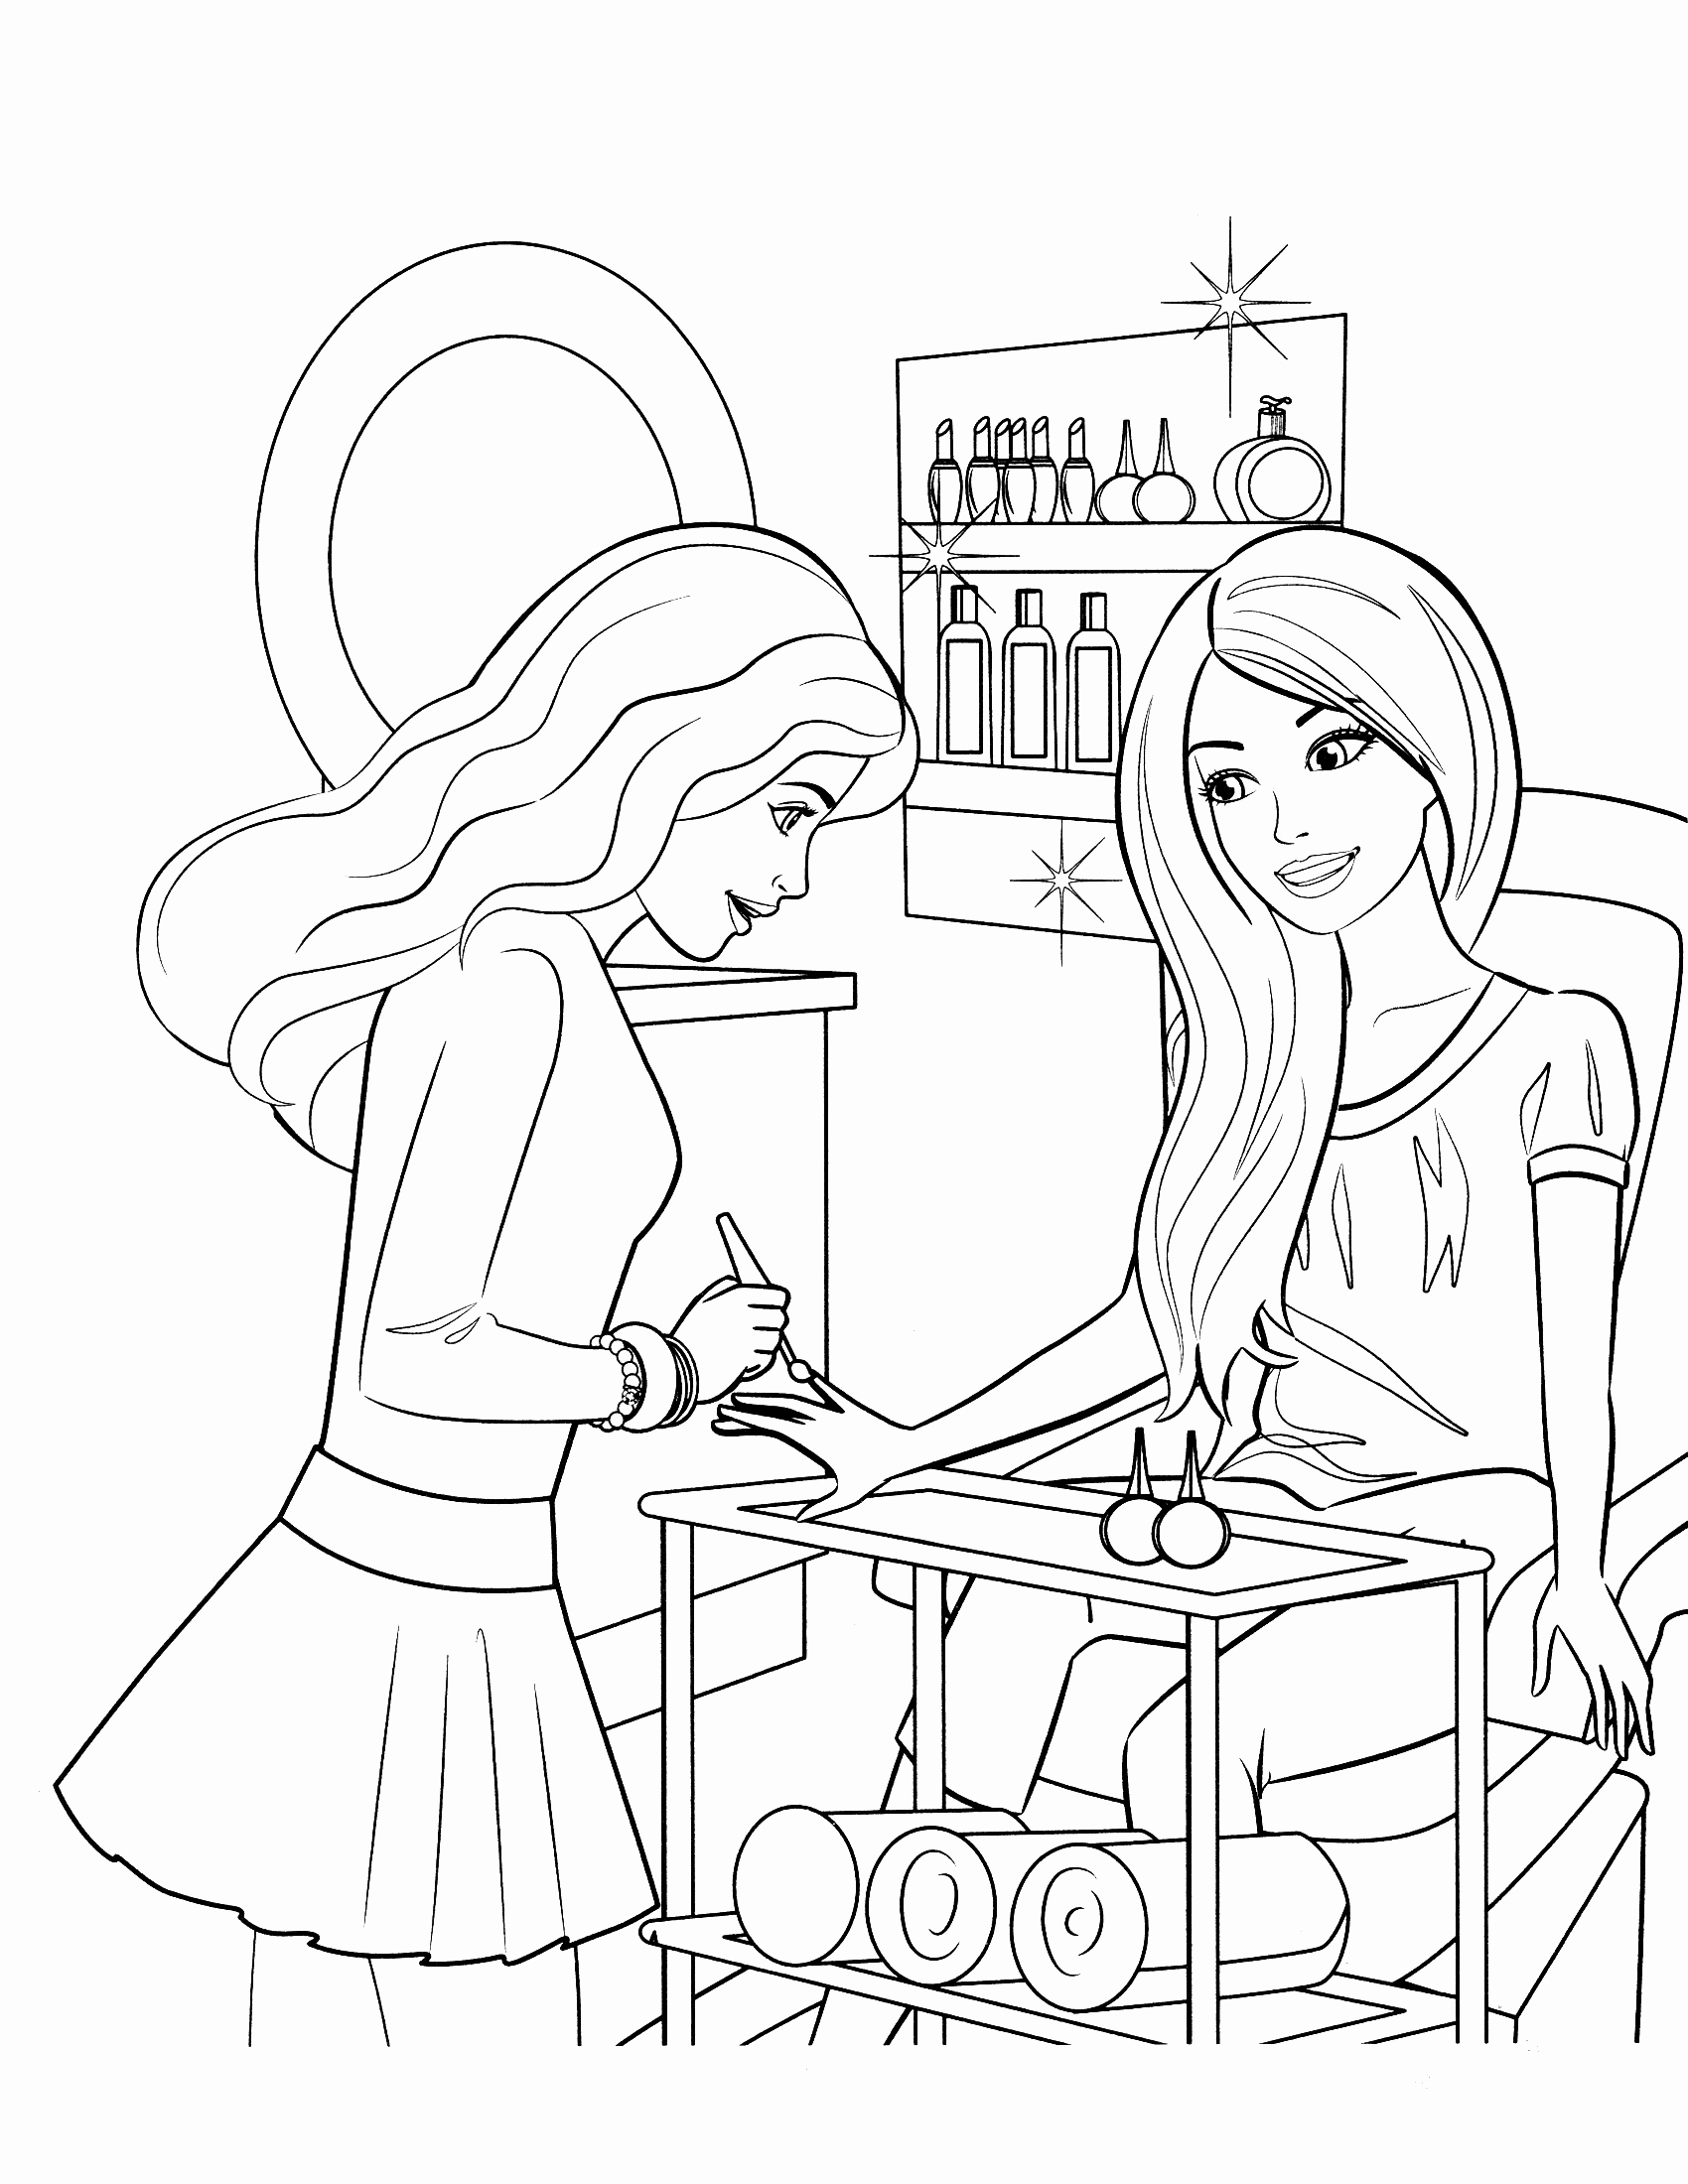 barbie and ken coloring sheets barbie and ken coloring pages download and print barbie ken and coloring barbie sheets